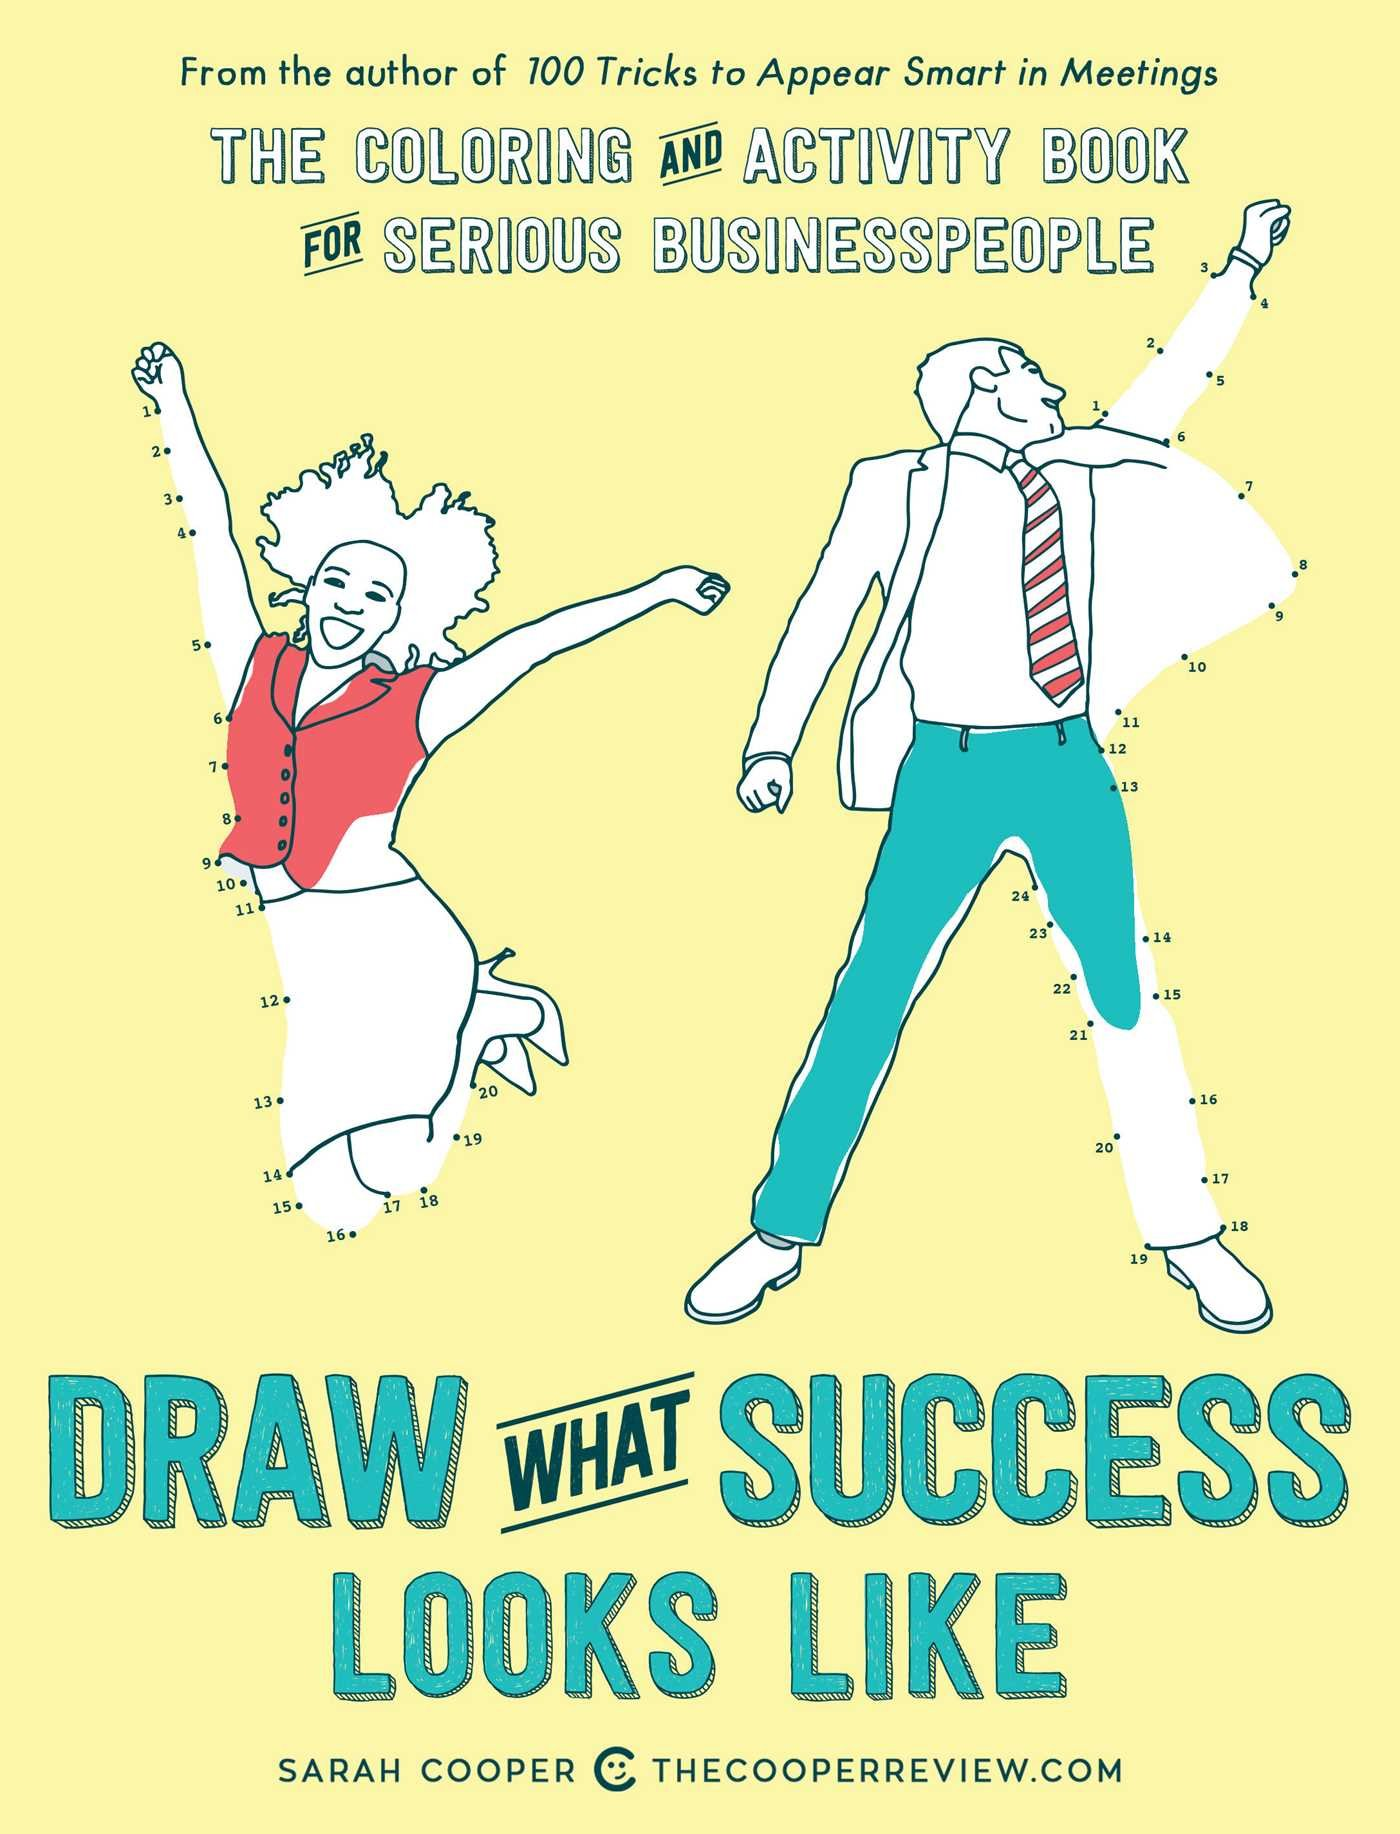 Amazon sarah cooper books biography blog audiobooks kindle draw what success looks like the coloring and activity book for serious businesspeople fandeluxe Images